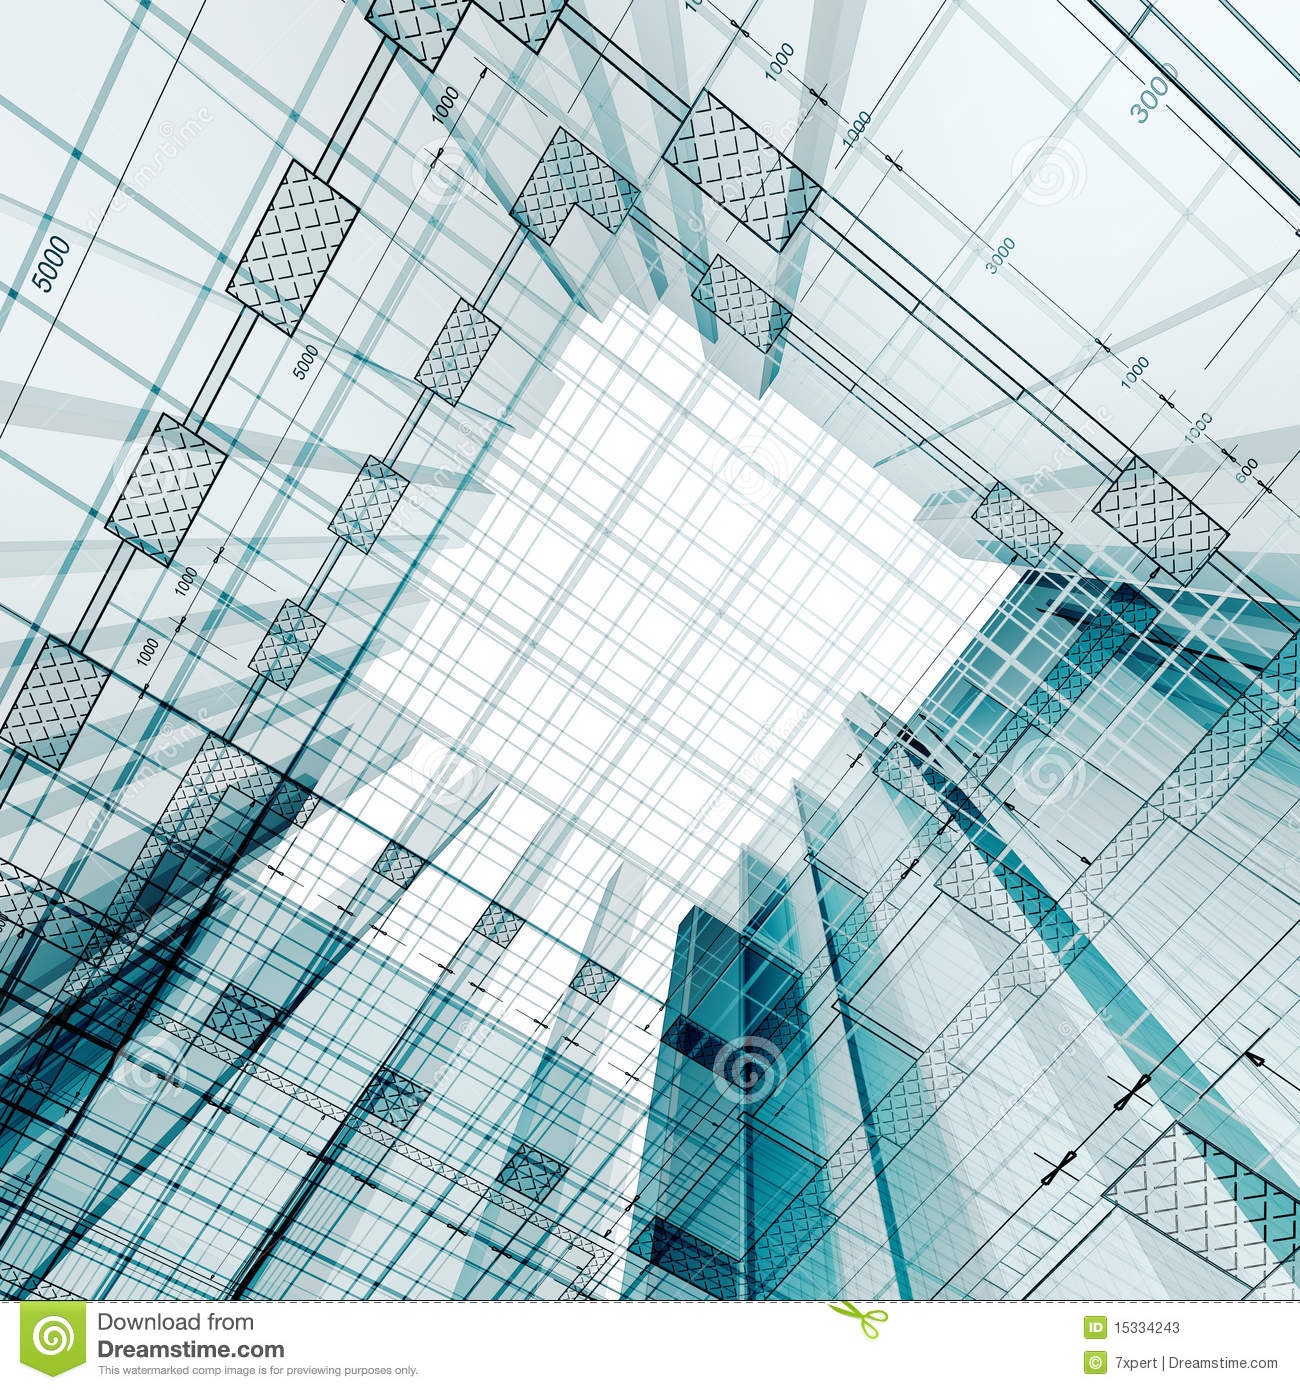 Architecture engineering stock photos image 15334243 for Architectural engineering concepts